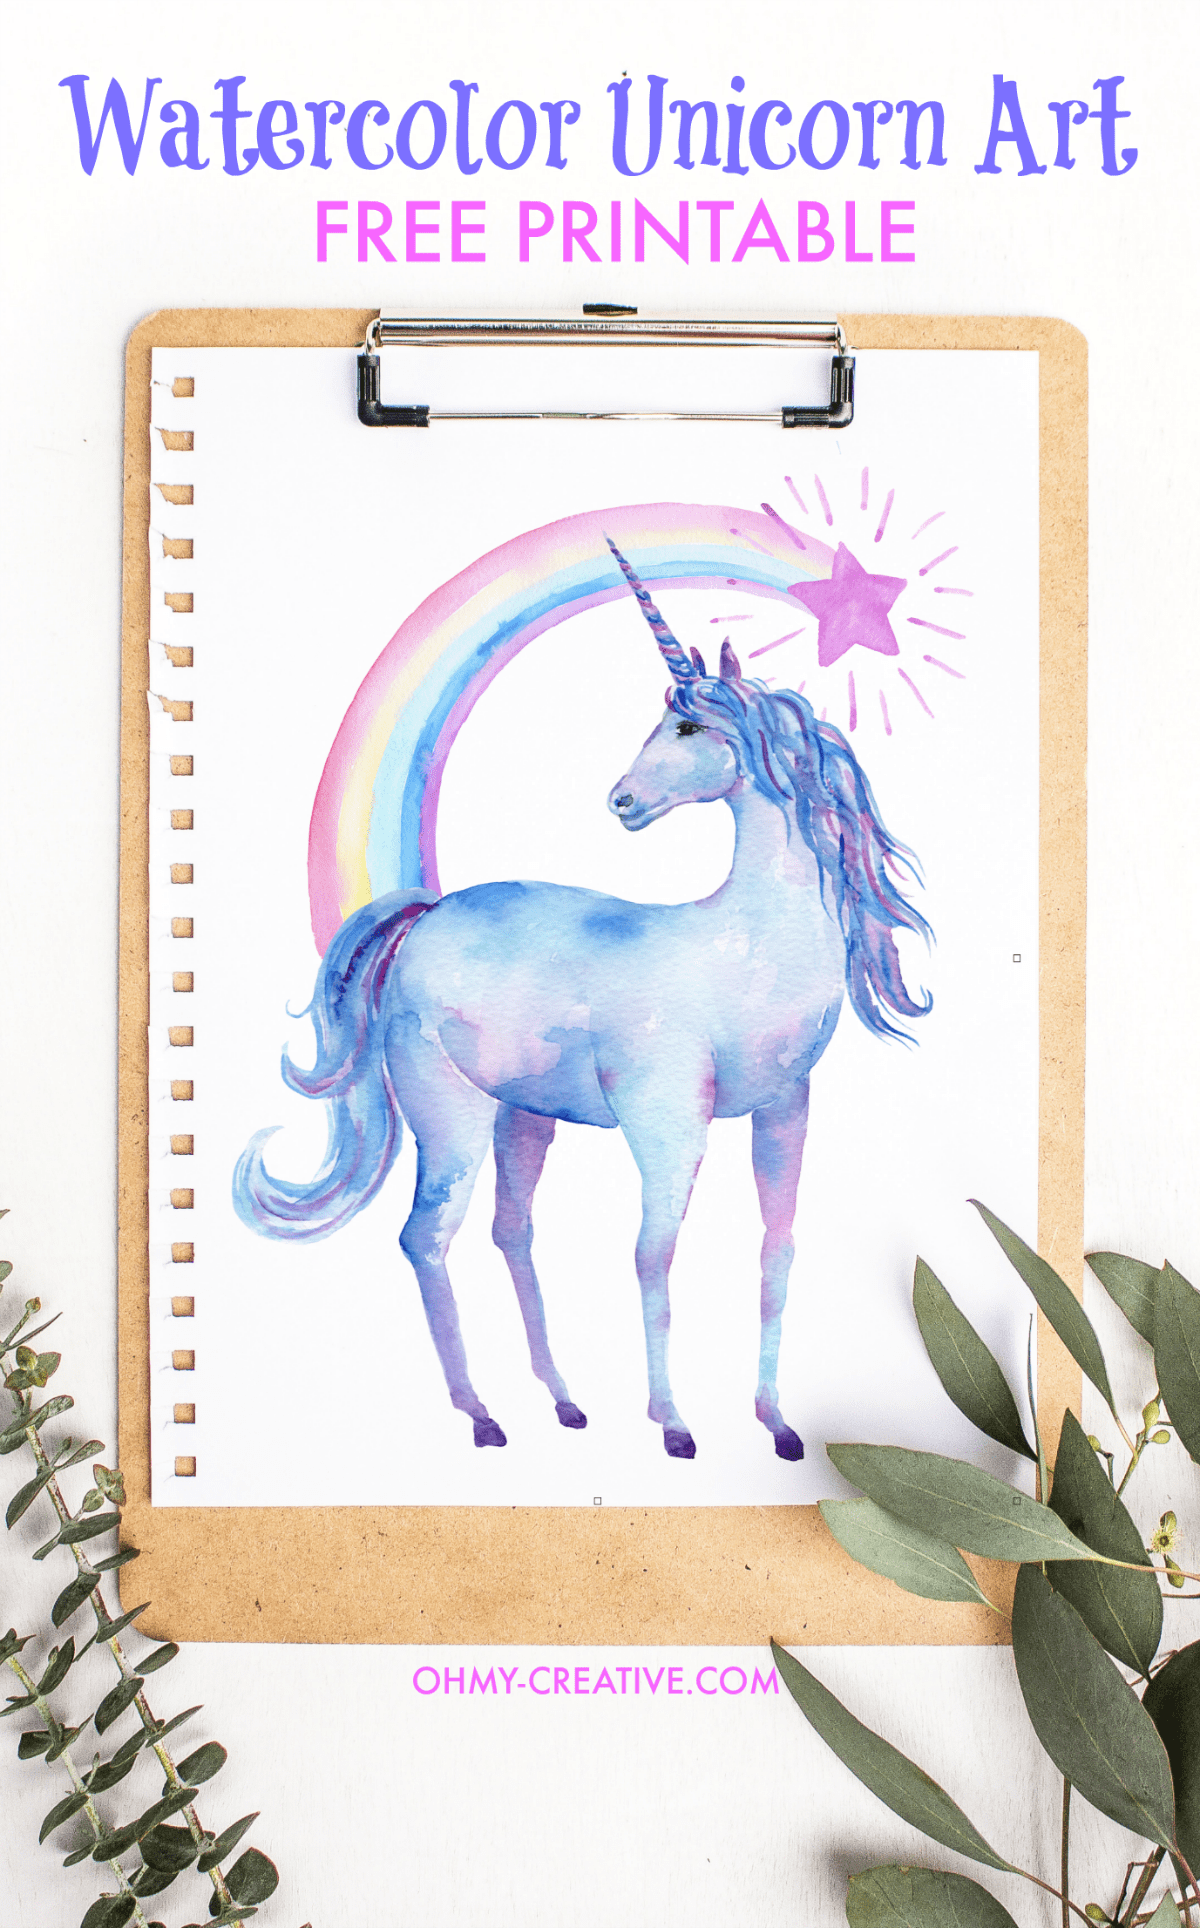 picture regarding Free Printable Art named Free of charge Printable Watercolor Unicorn Visuals - Oh My Artistic